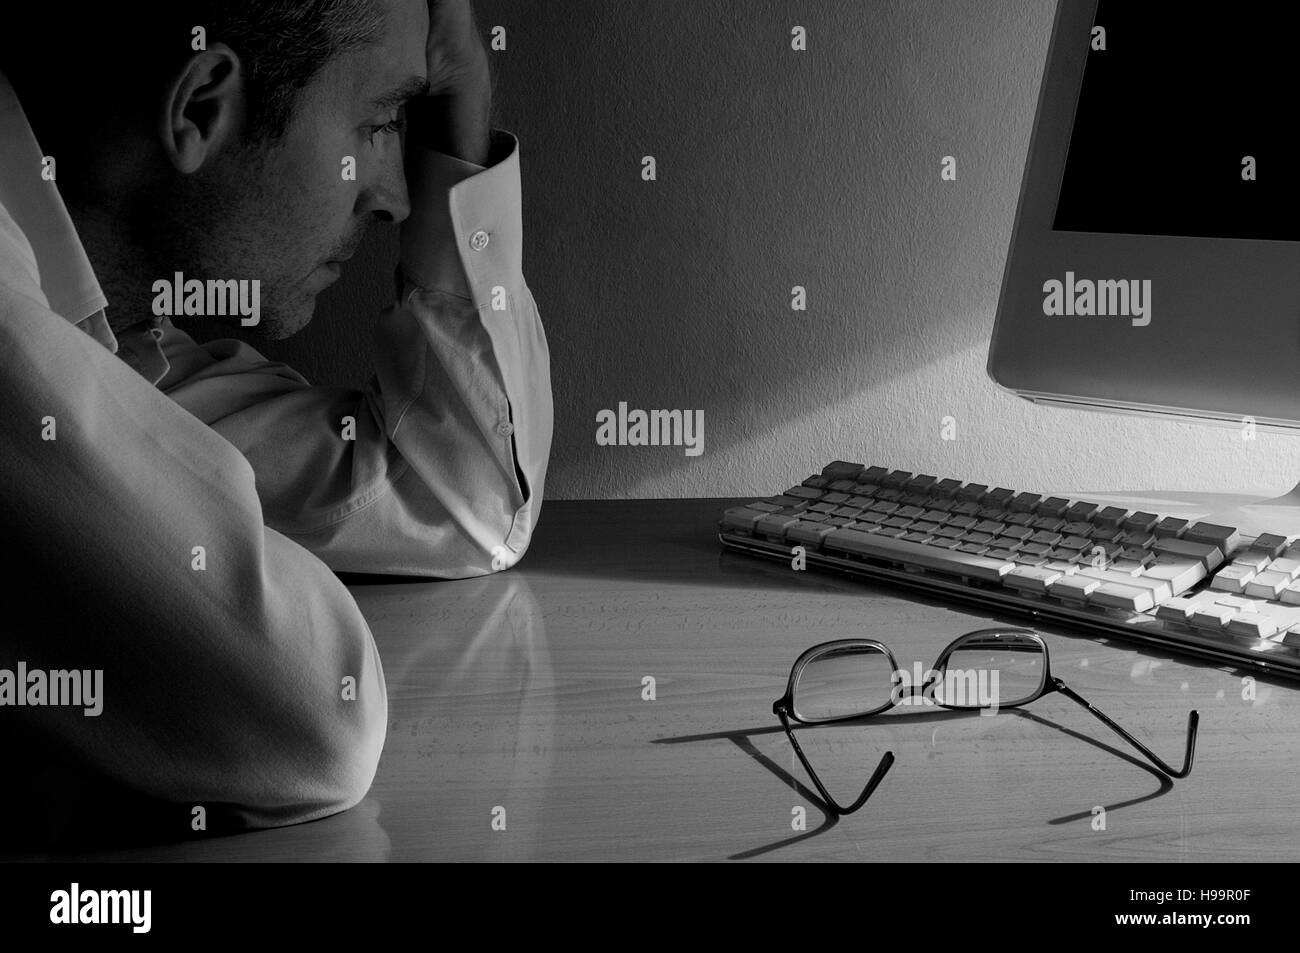 Thoughtful man at the computer. Black and white. - Stock Image